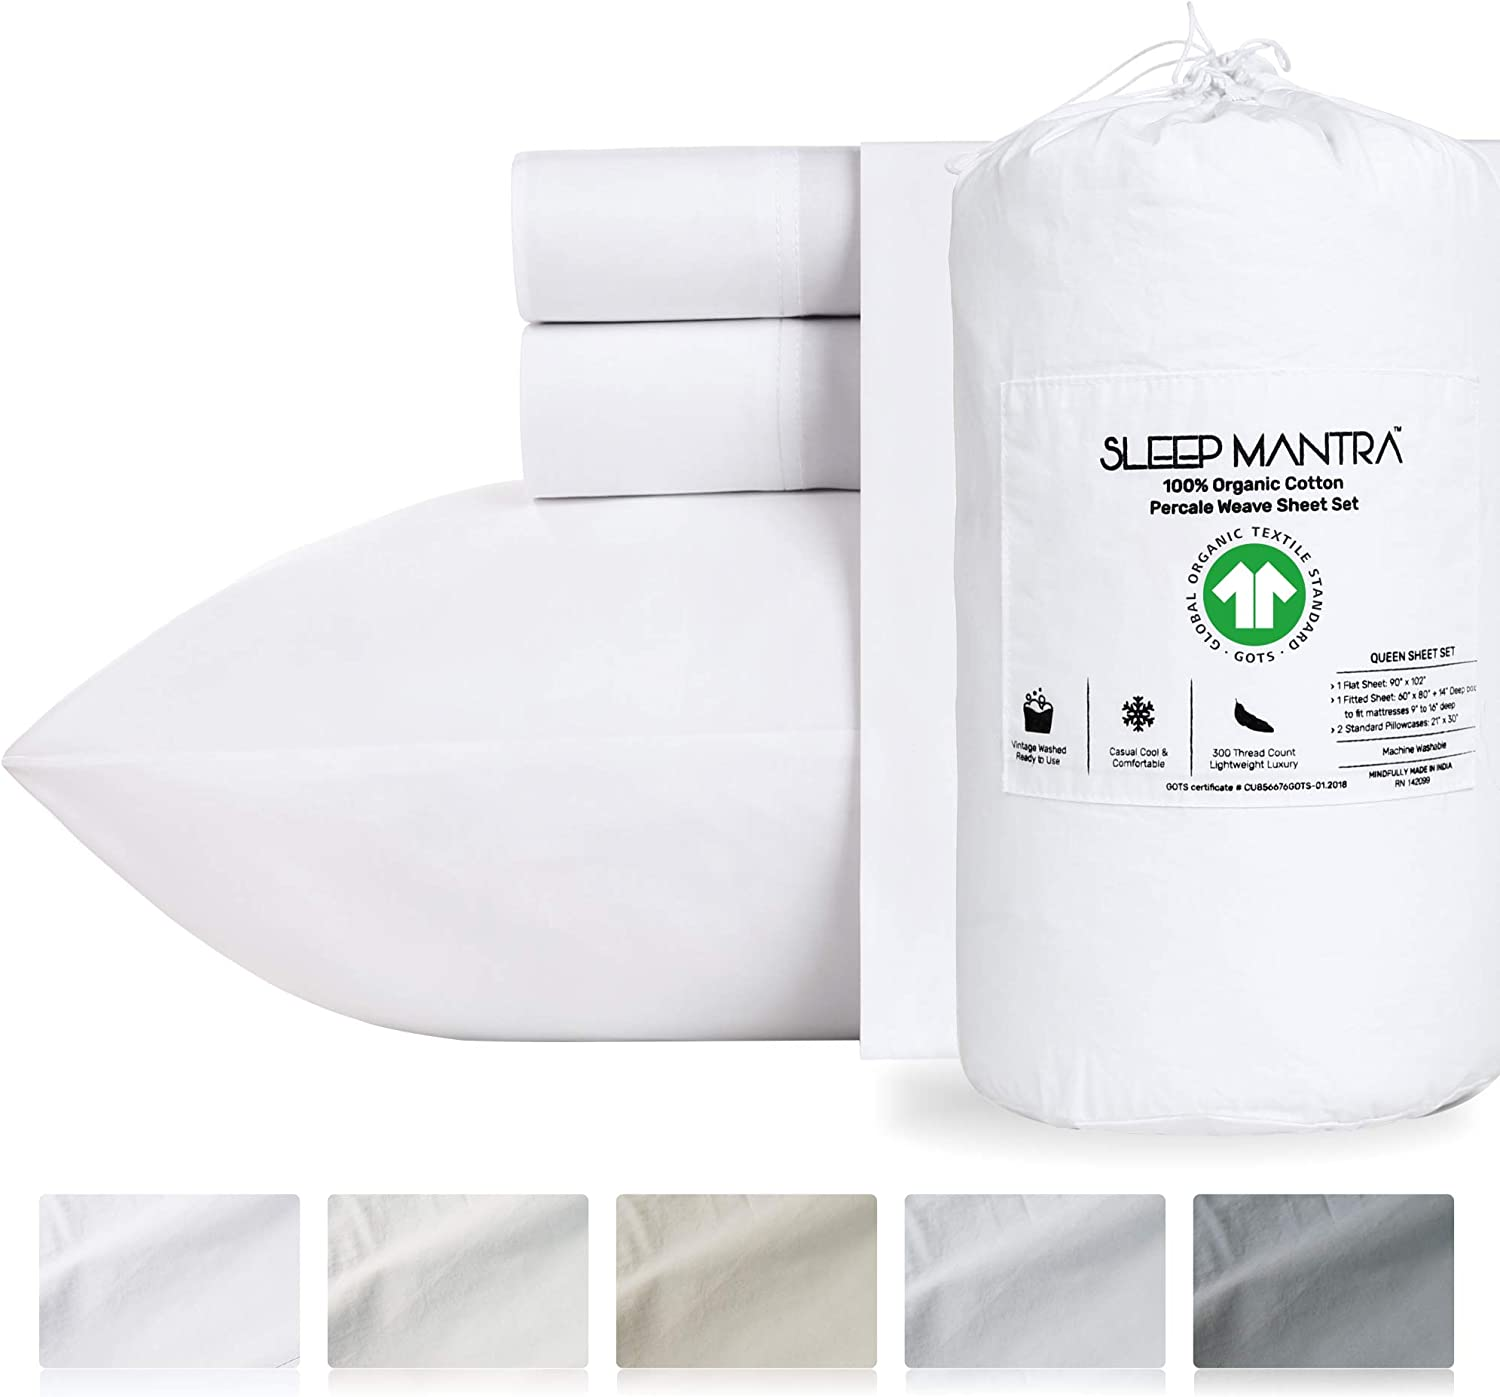 Twin-XL White Sheets Percale Weave - 100% Organic Cotton 3 Piece Vintage Washed Sheet Set, GOTS Certified Breathable Deep Pocket Bedding for 16 Inch Mattress